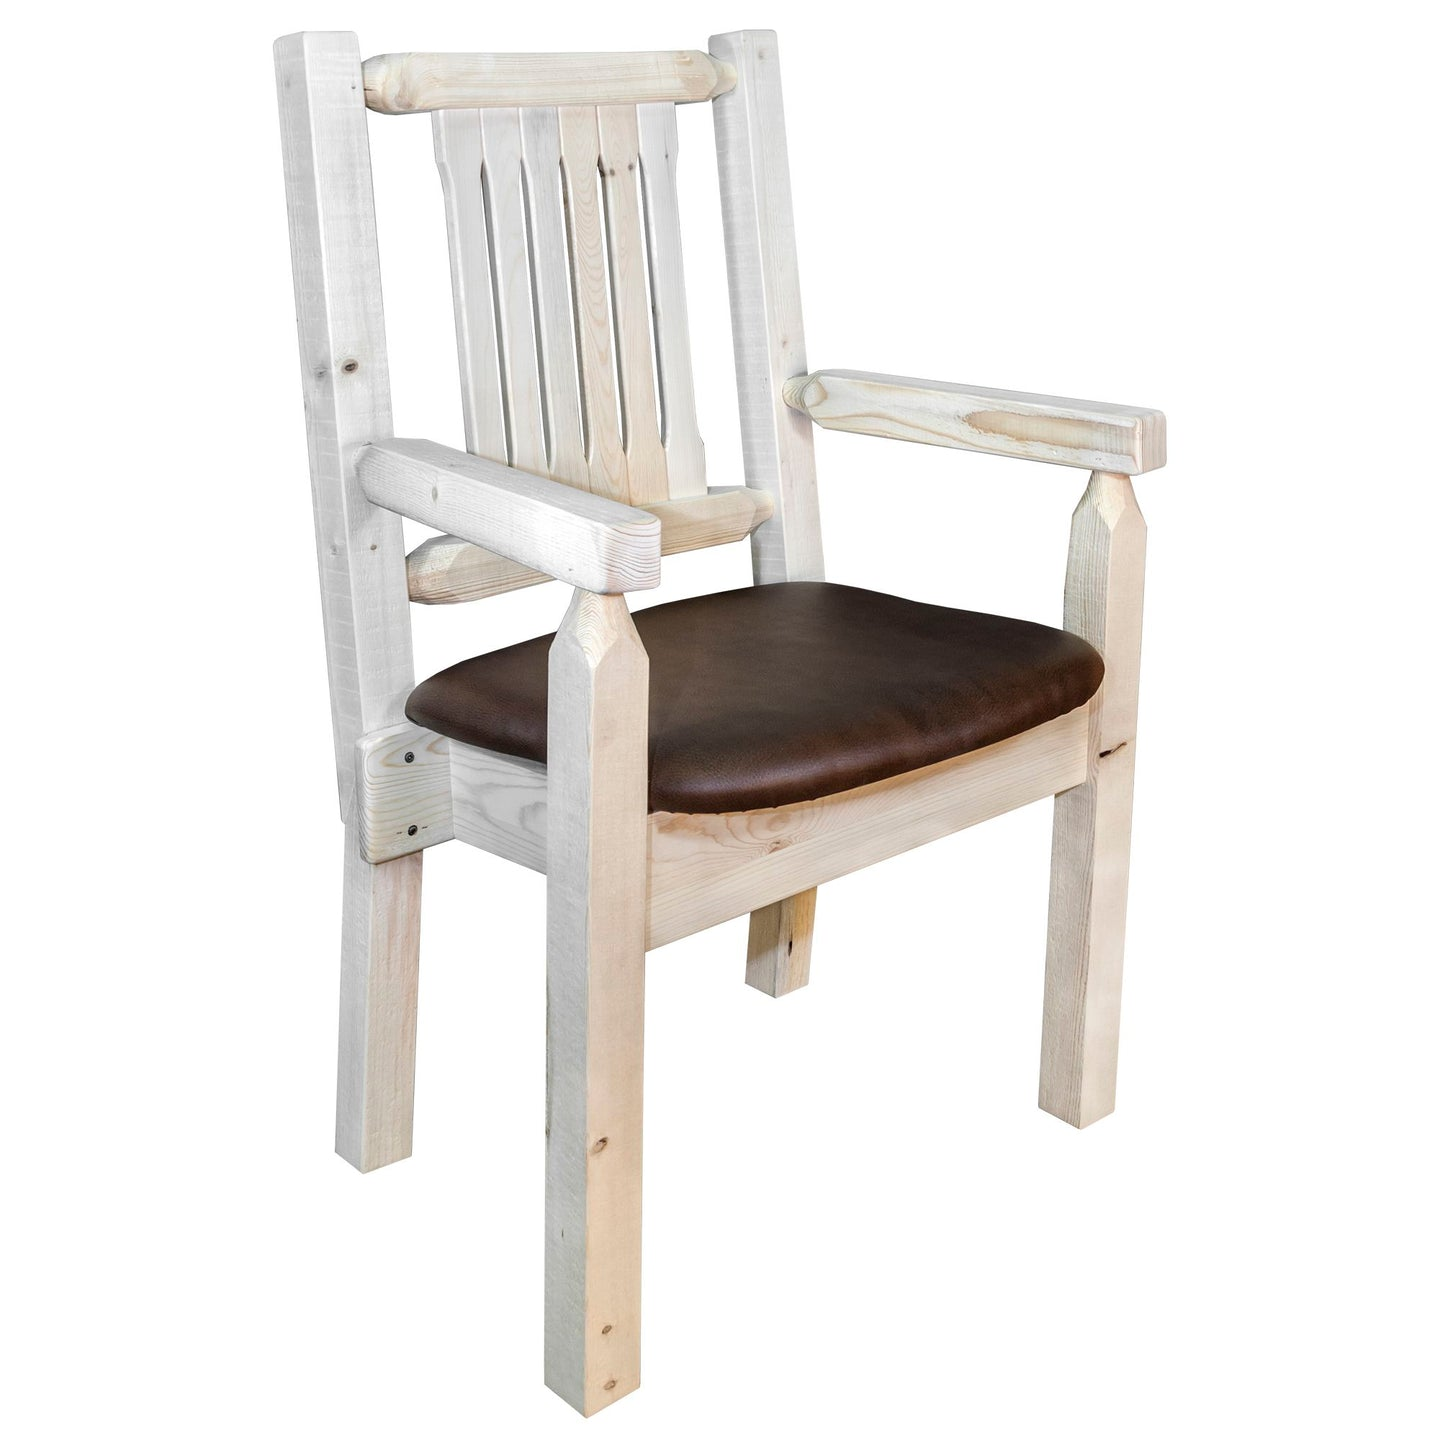 Homestead Rustic Captain's Chair w. Upholstered Seat - Saddle